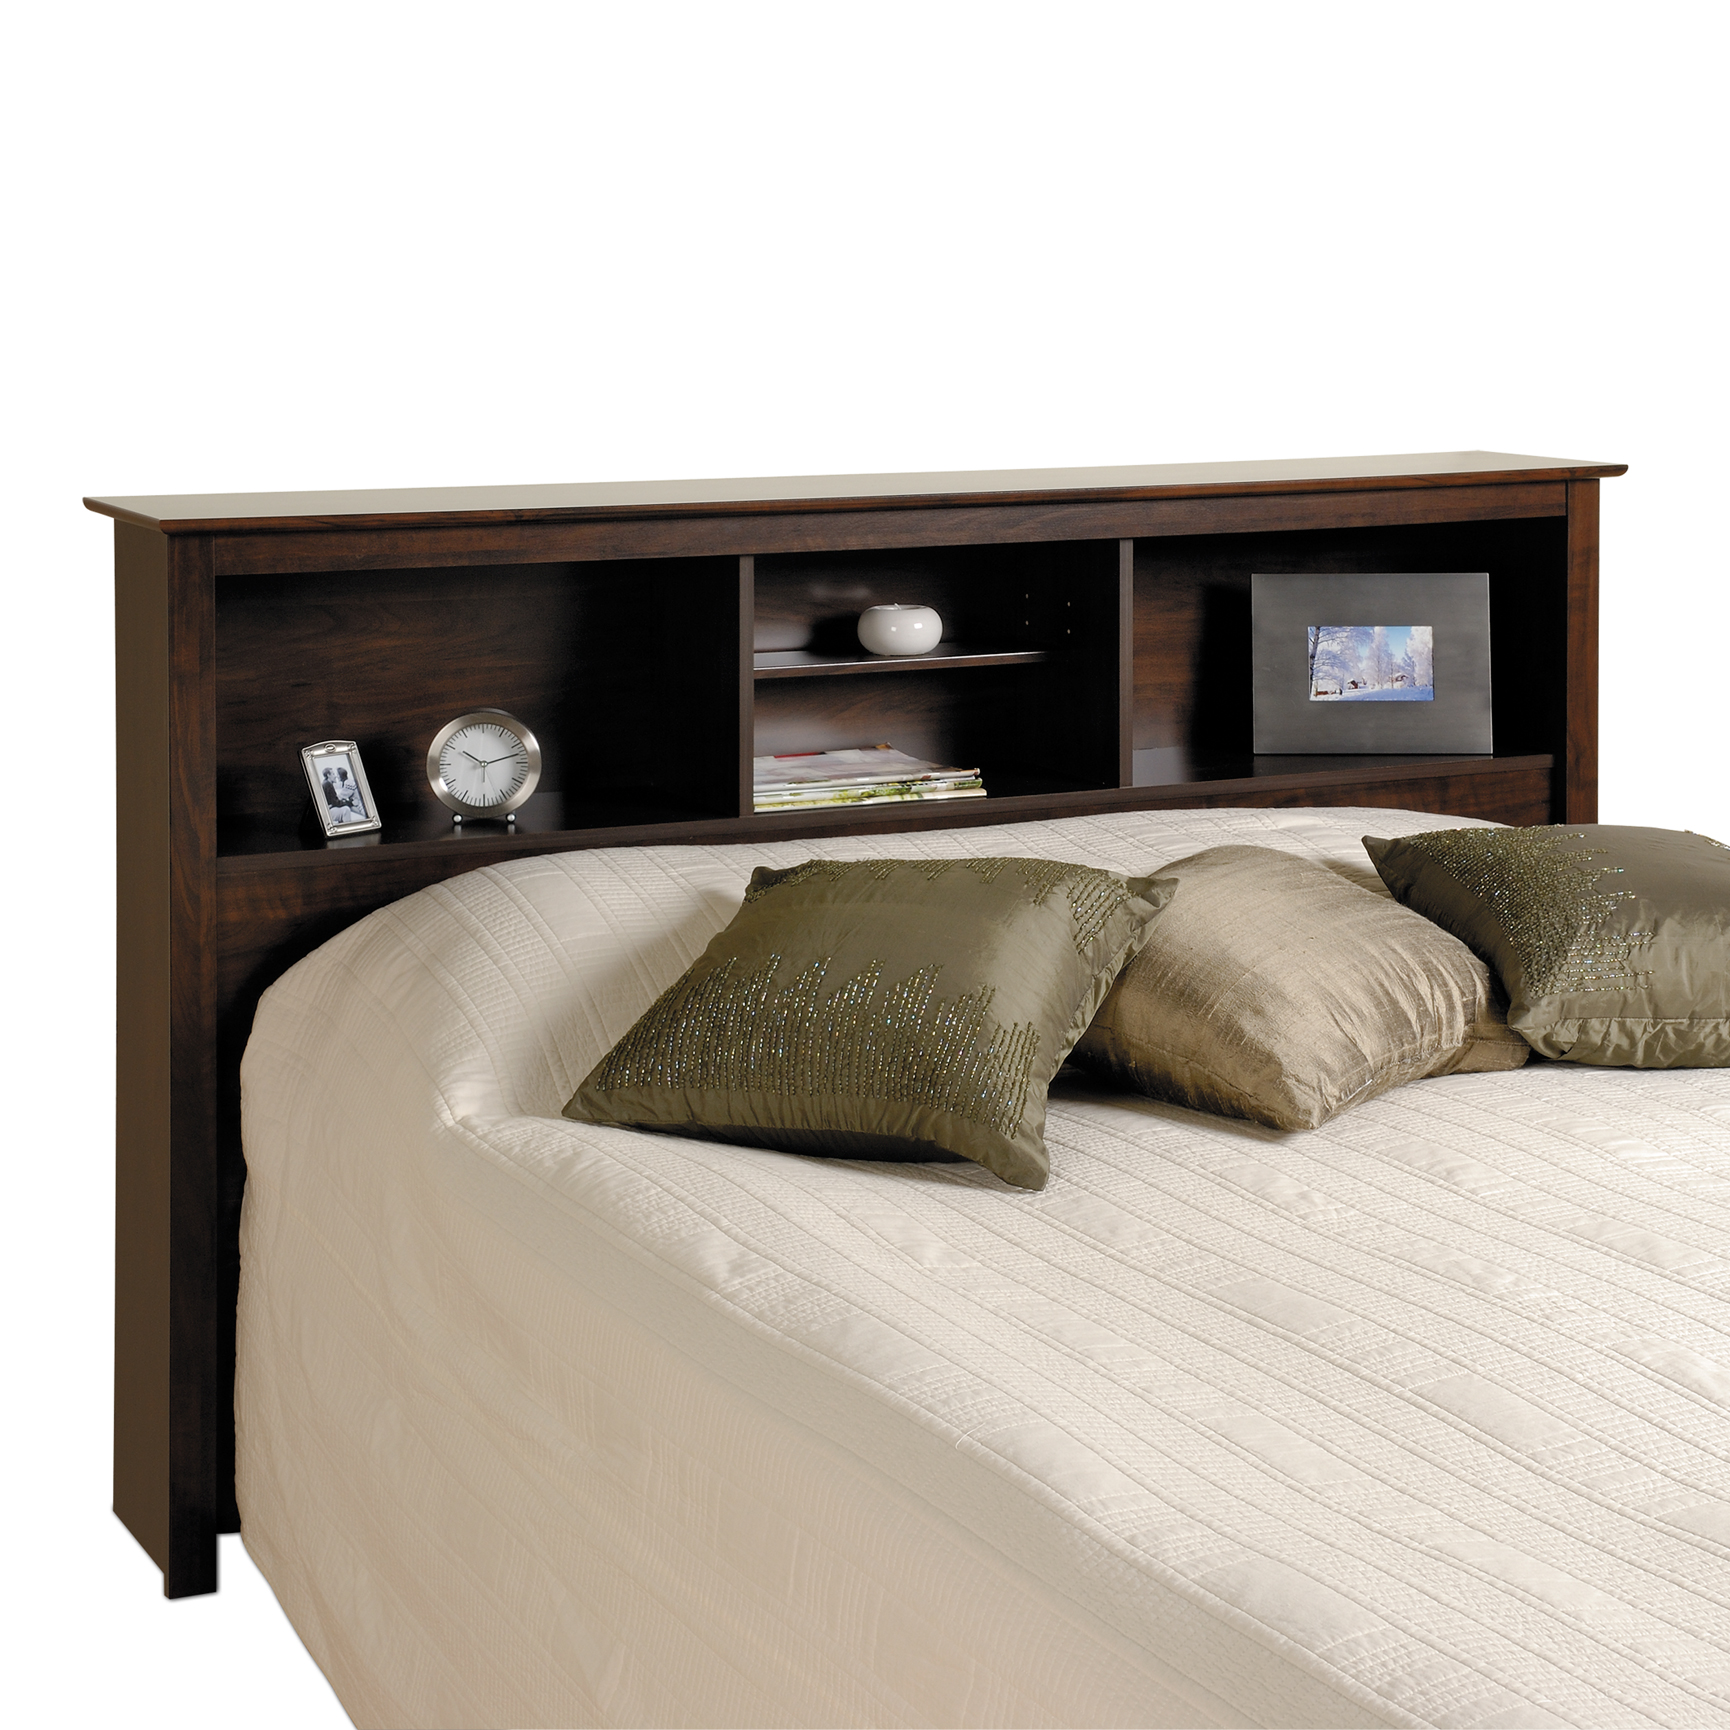 Fremont Espresso Double / Queen Bookcase Headboard, ESPRESSO